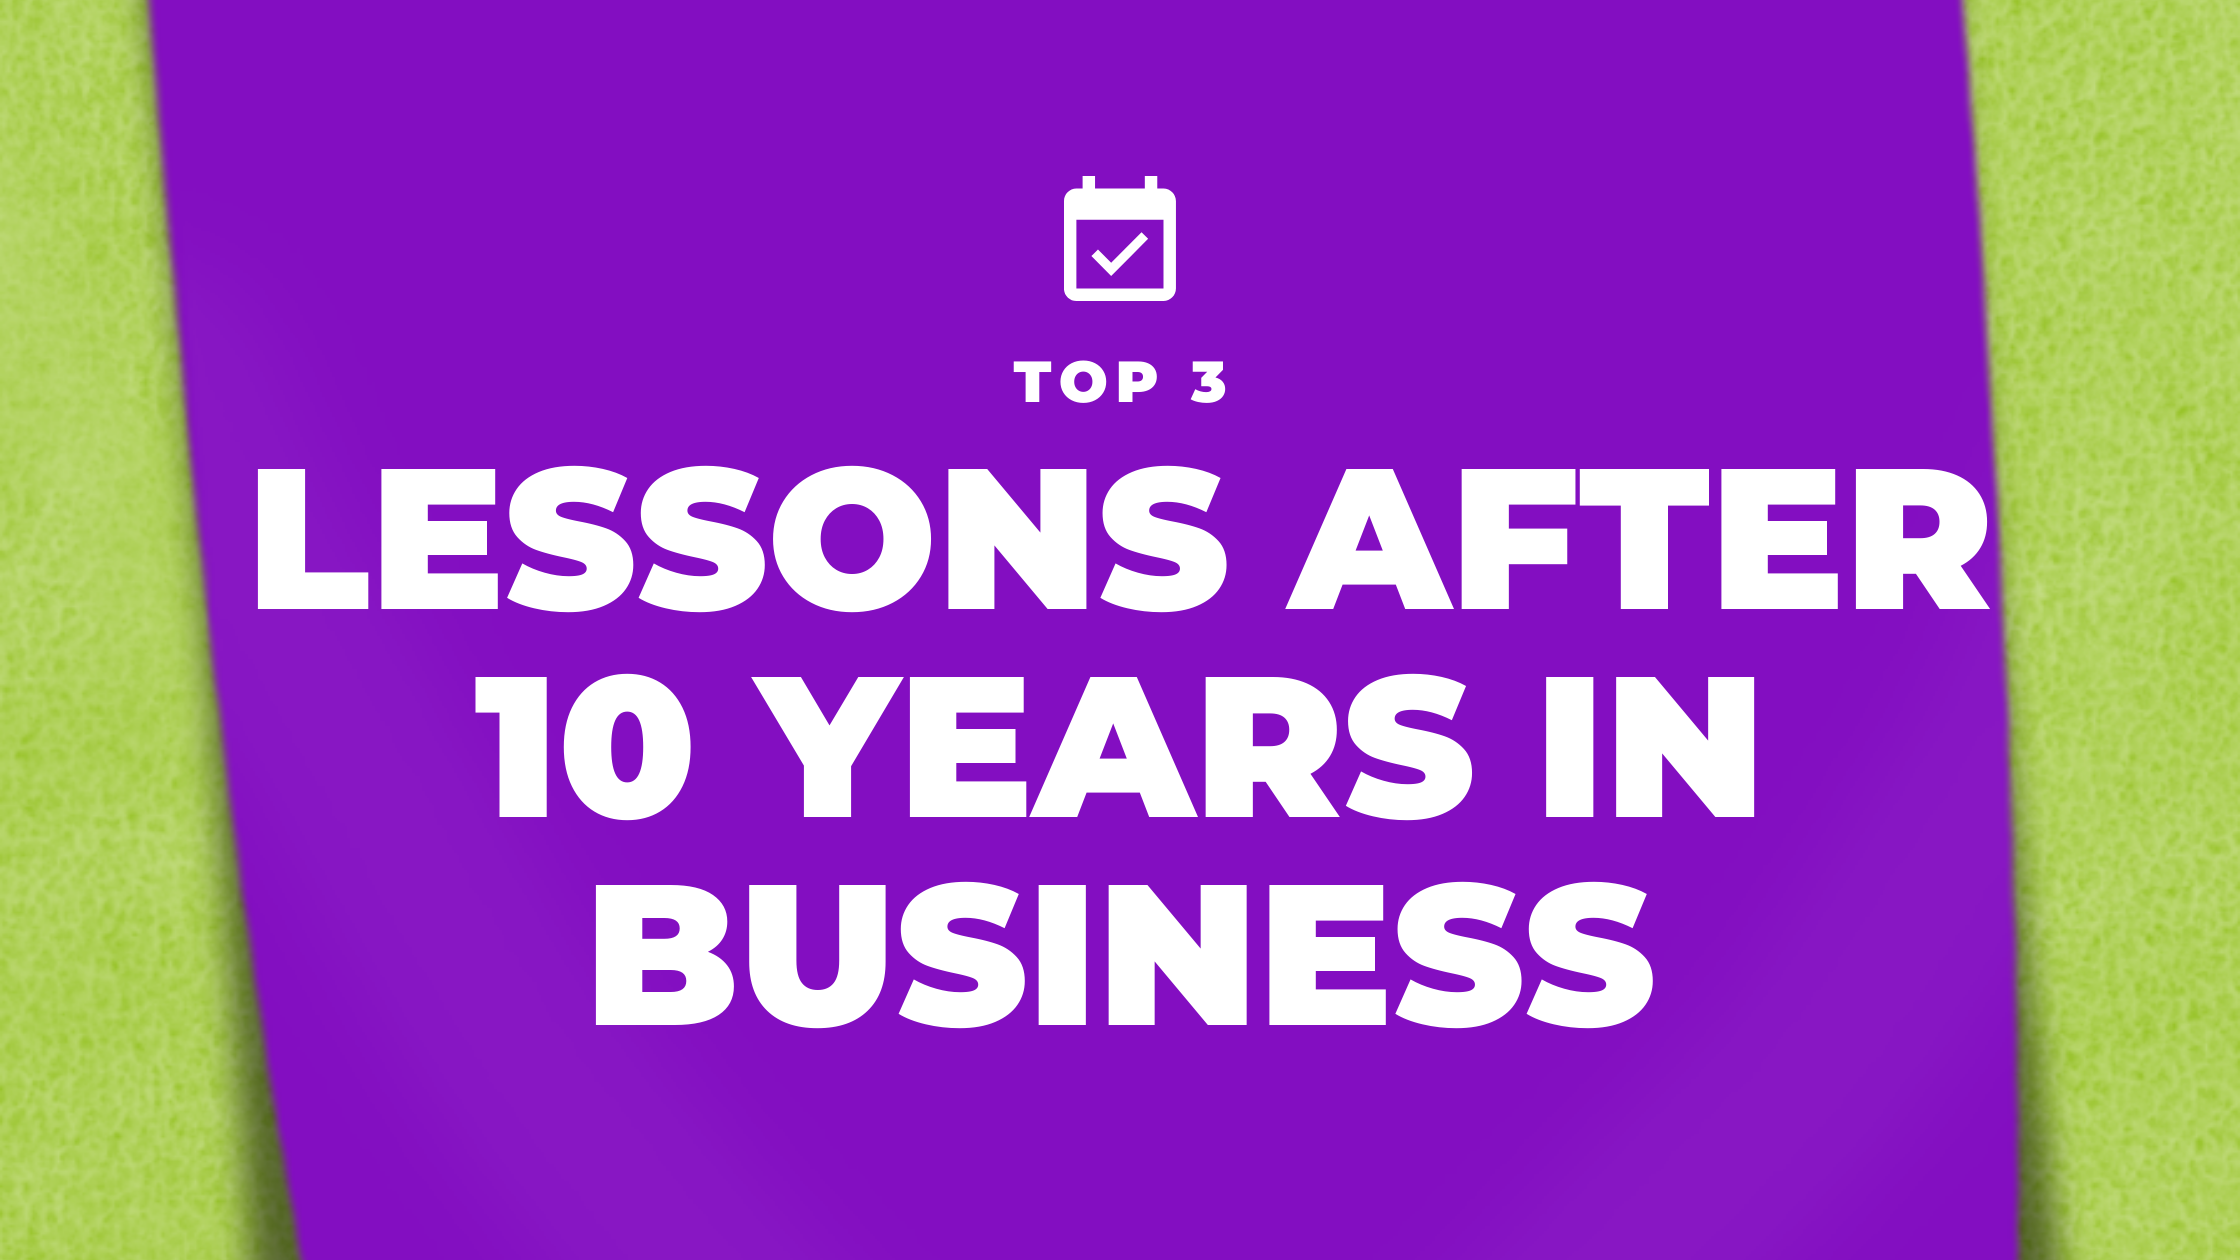 Top three lessons learnt in business after 10 years